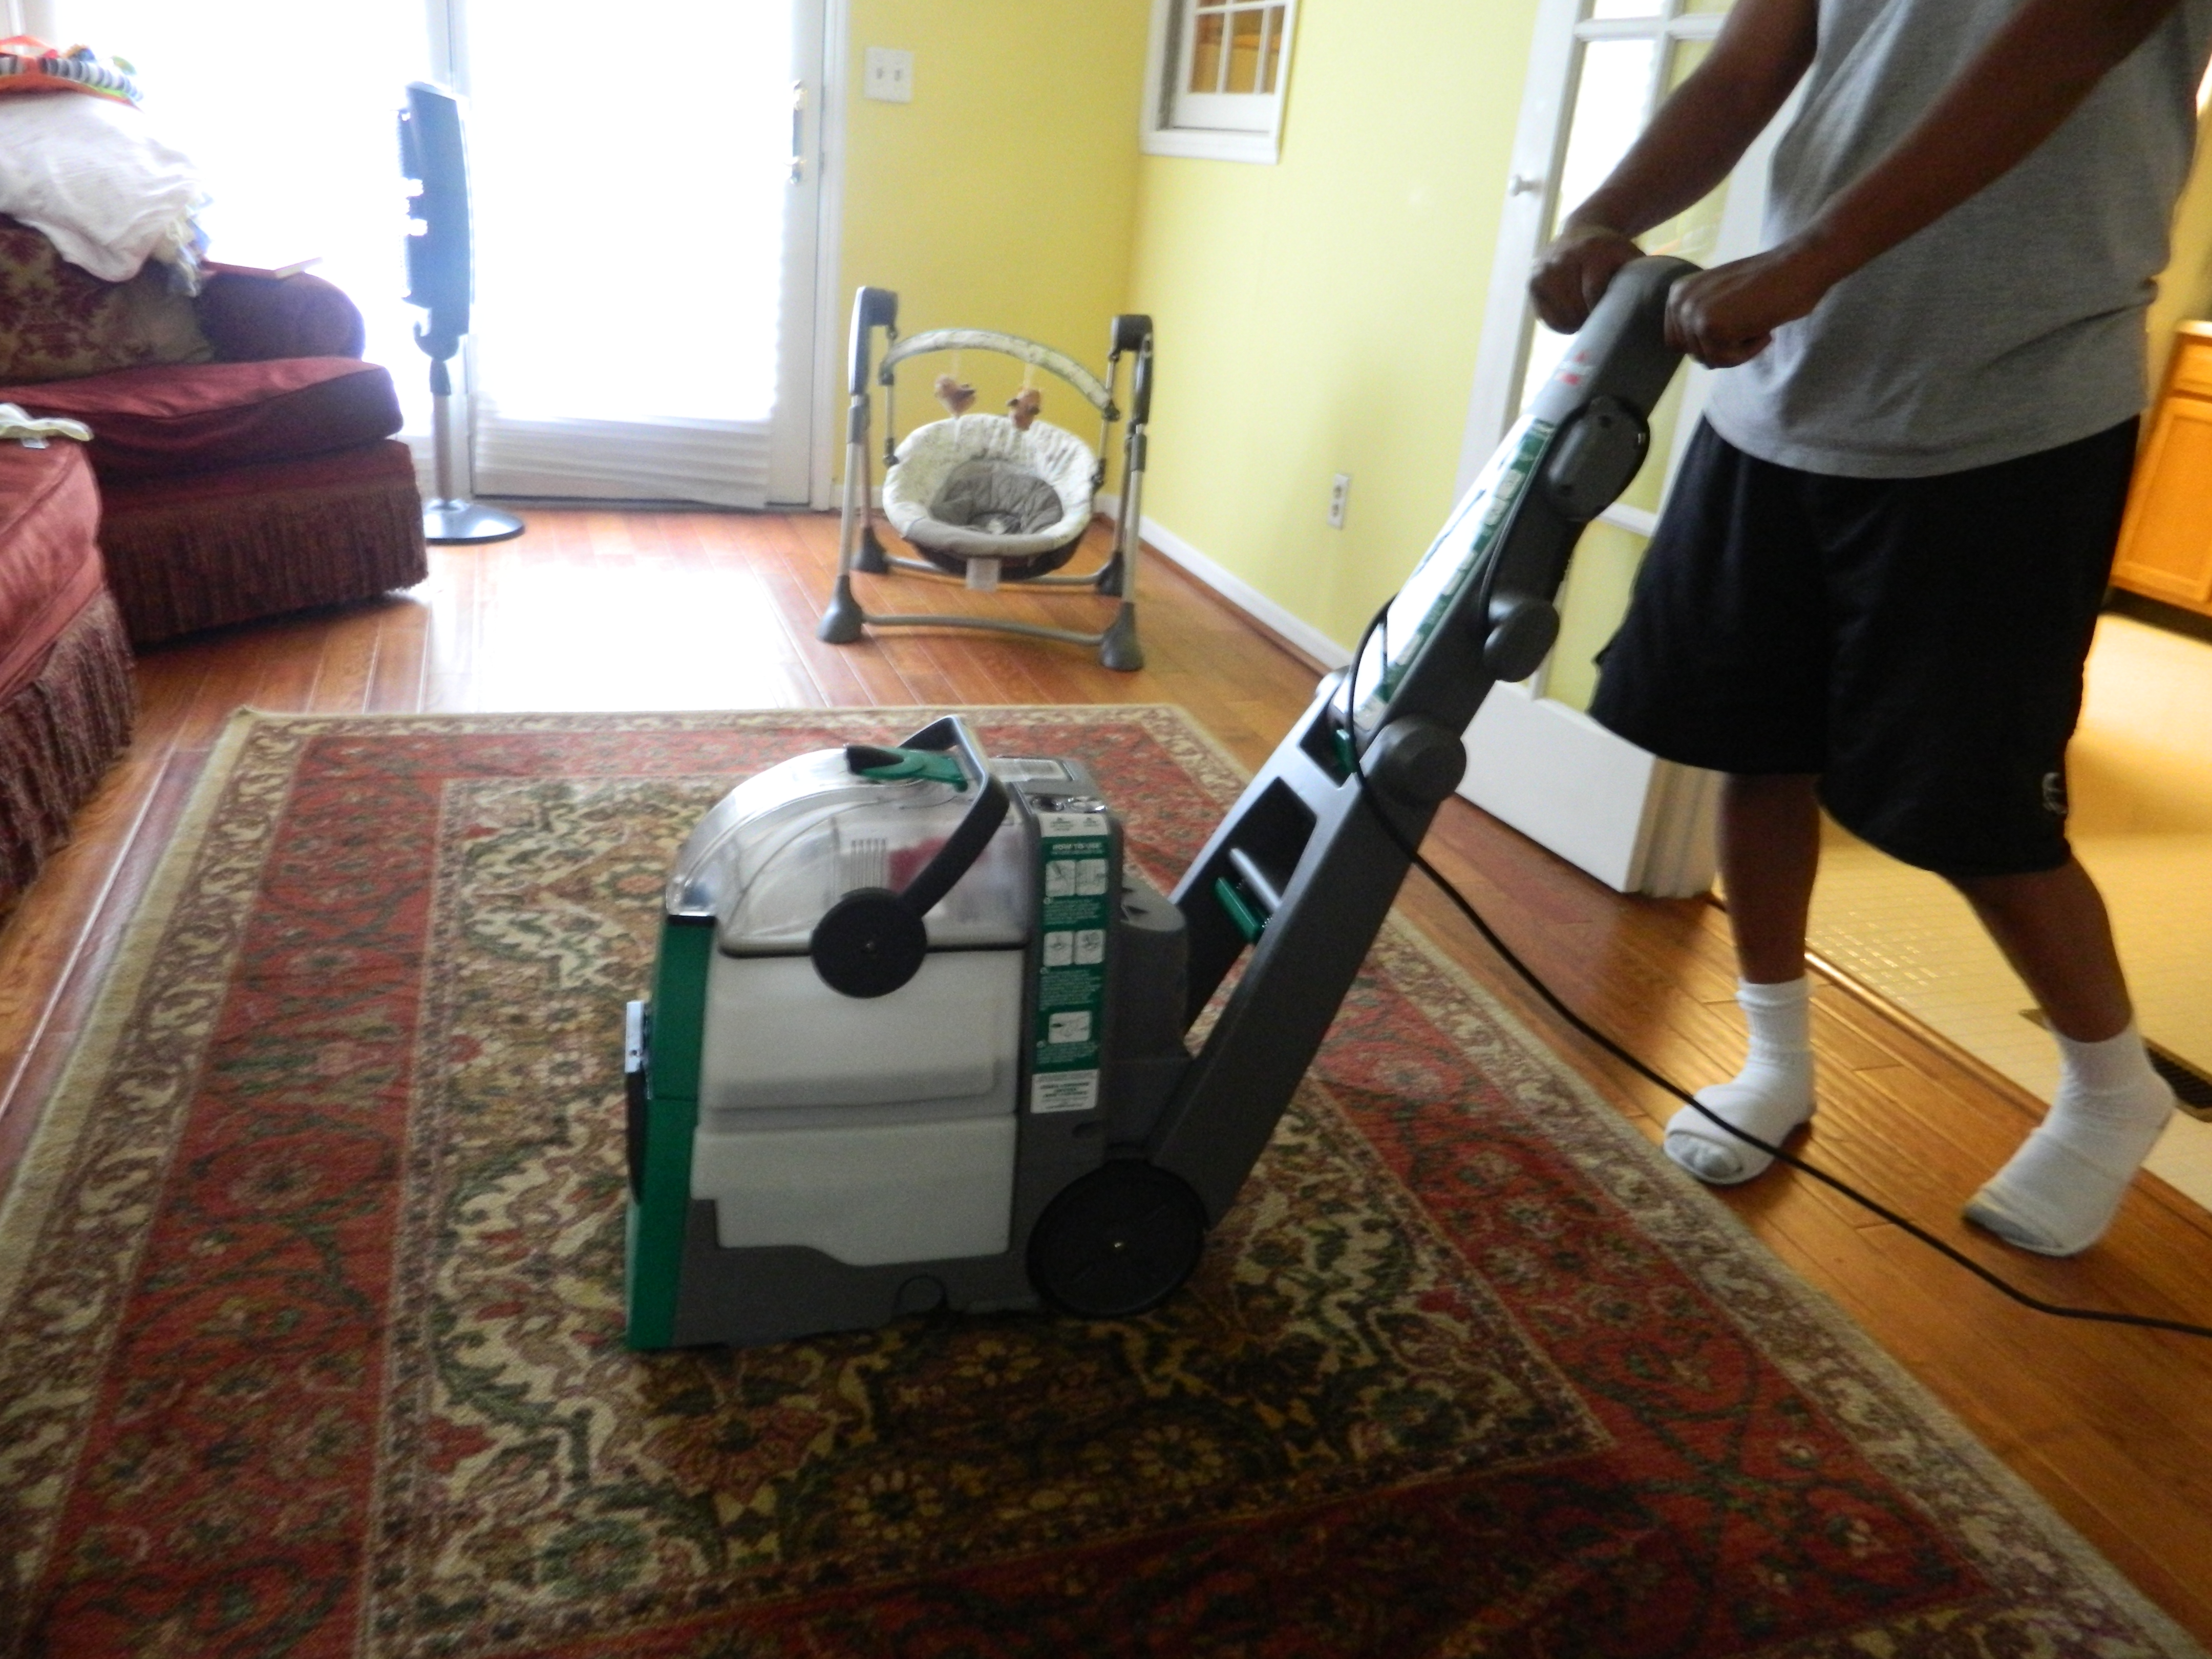 Bissell big green deep cleaning machine review bernetta style dscn0589 dailygadgetfo Choice Image